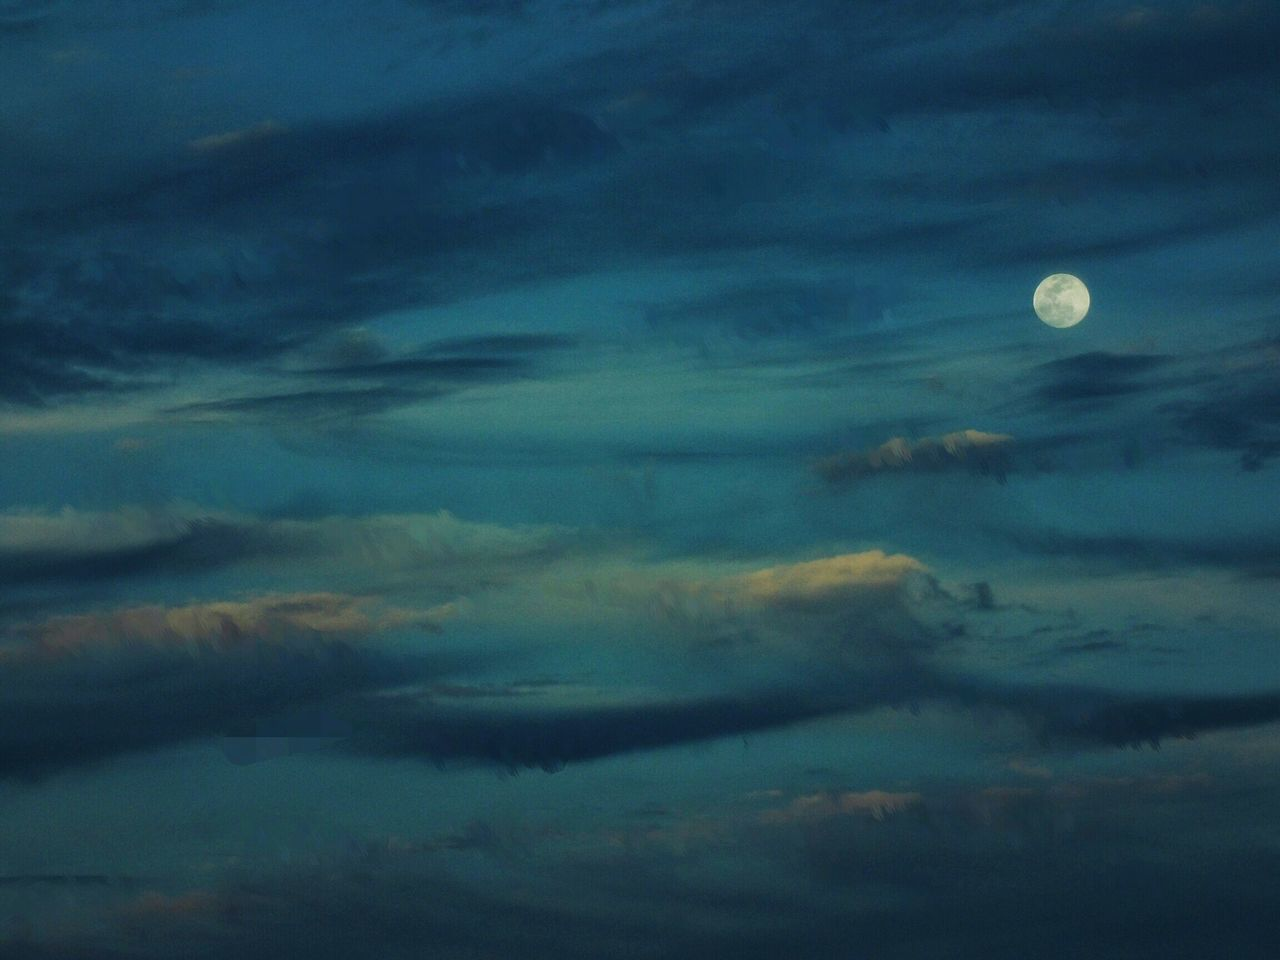 Blue Wave Blue Blue Sky Blue Sky And White Moon Early Moon Magic Hour Shades Of Blue And Then Day Becomes The Night... Out Of The Blue ... Blue Sky Clouds And Full Moon Early Evening Sky True Colors Nature's Diversities